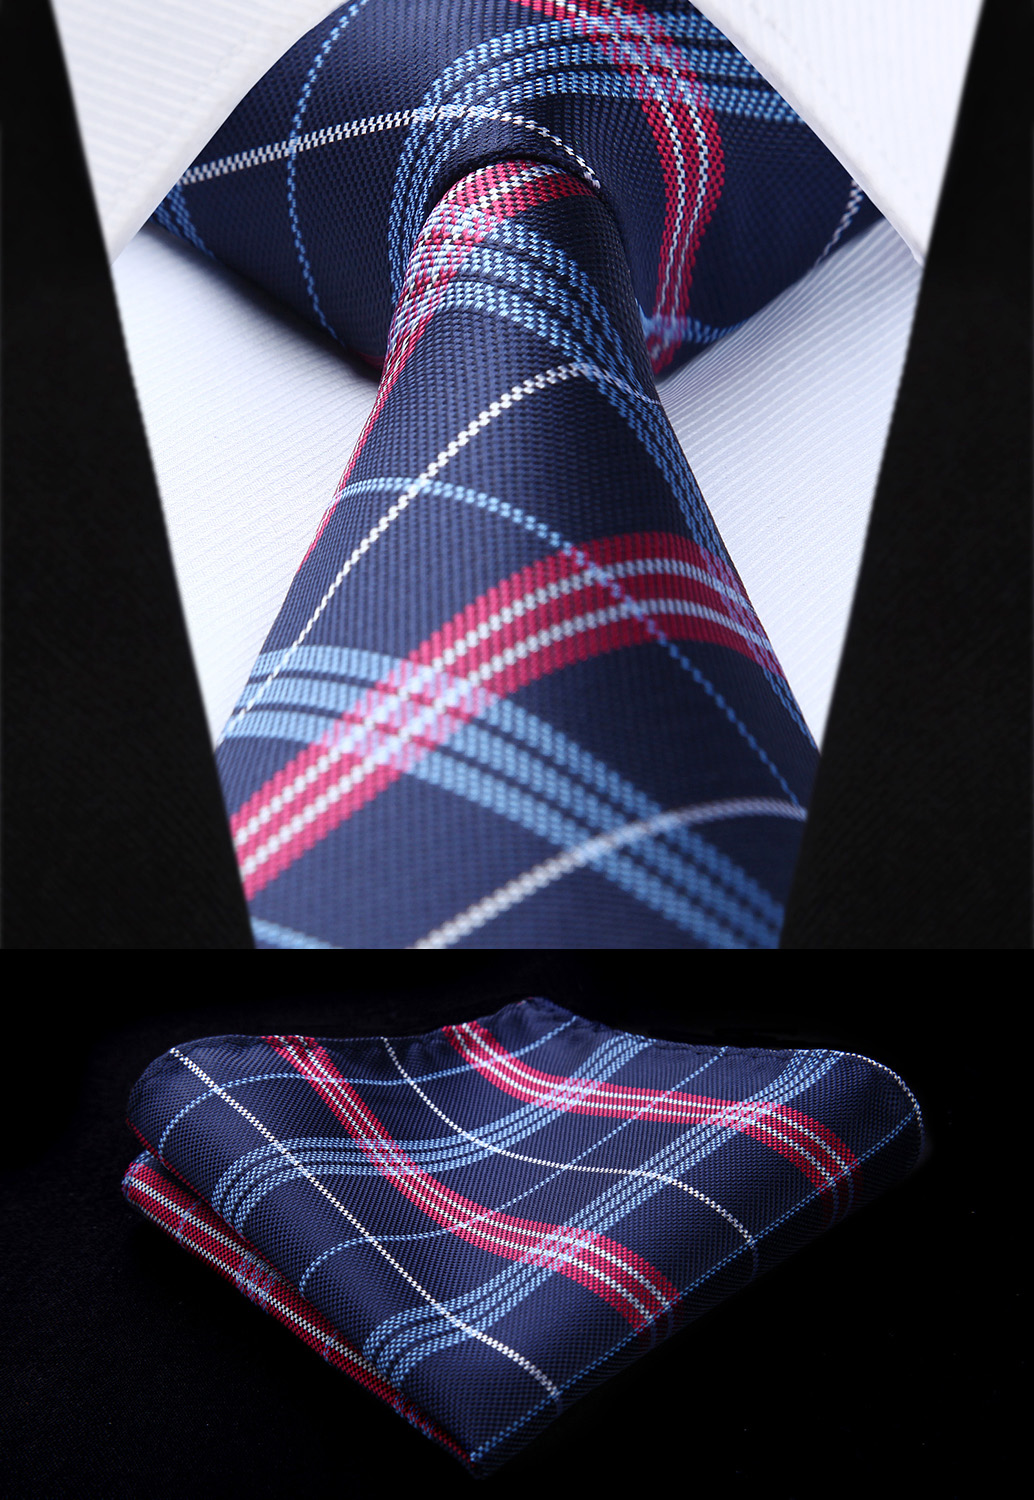 Tc814v8s Plaid Navy Blue Burgundy Check 3 4 Quot Silk Tie